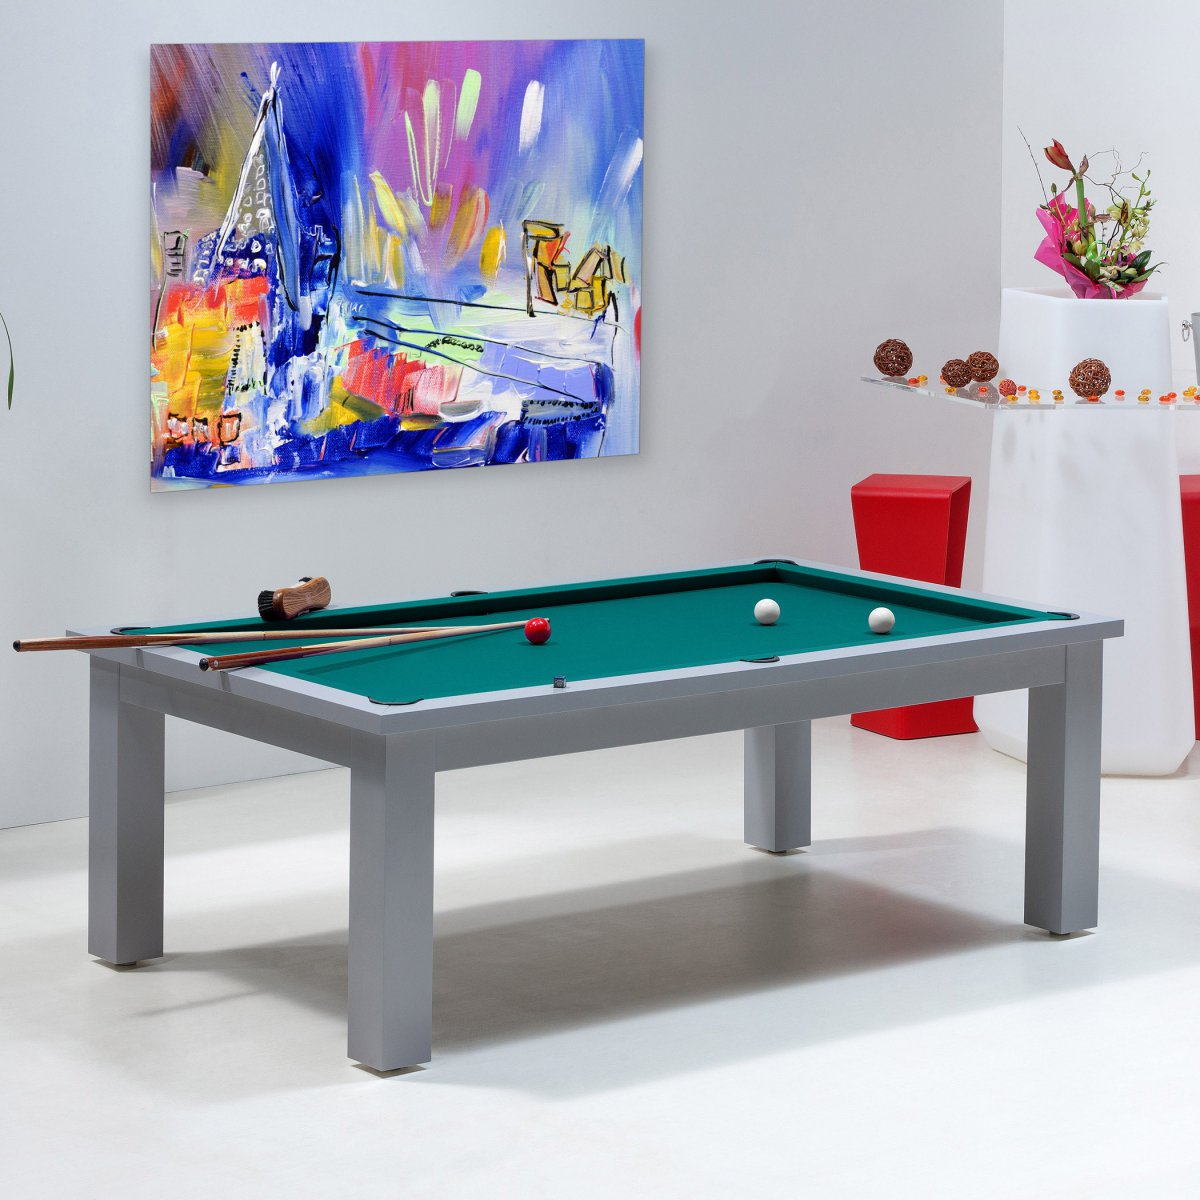 Table billard transformable paris - Table billard convertible table a manger ...